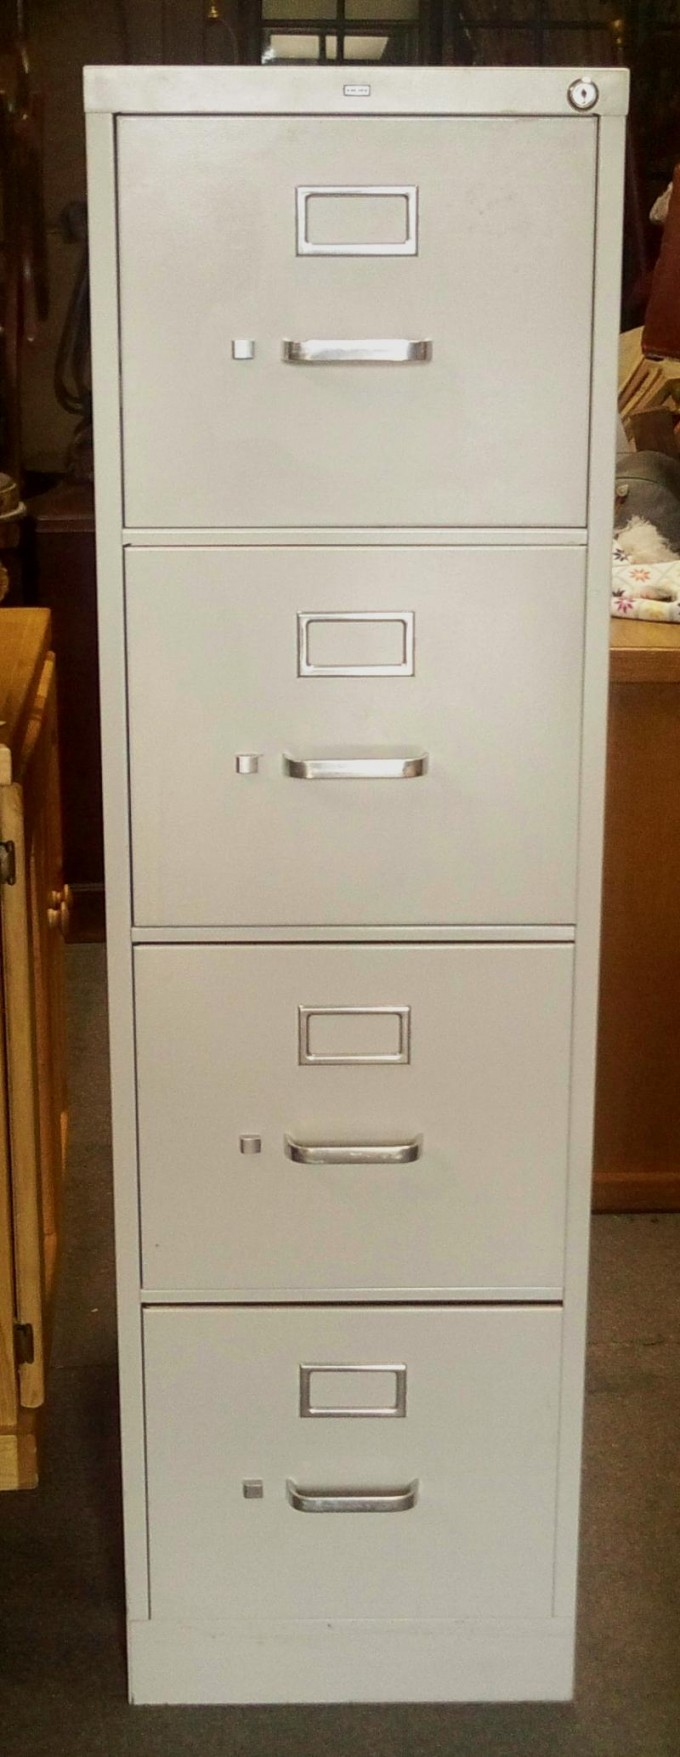 Chic Vertical Fireproof File Cabinet In Gray With Four Drawers And Silver Handle For Home Office Furniture Ideas